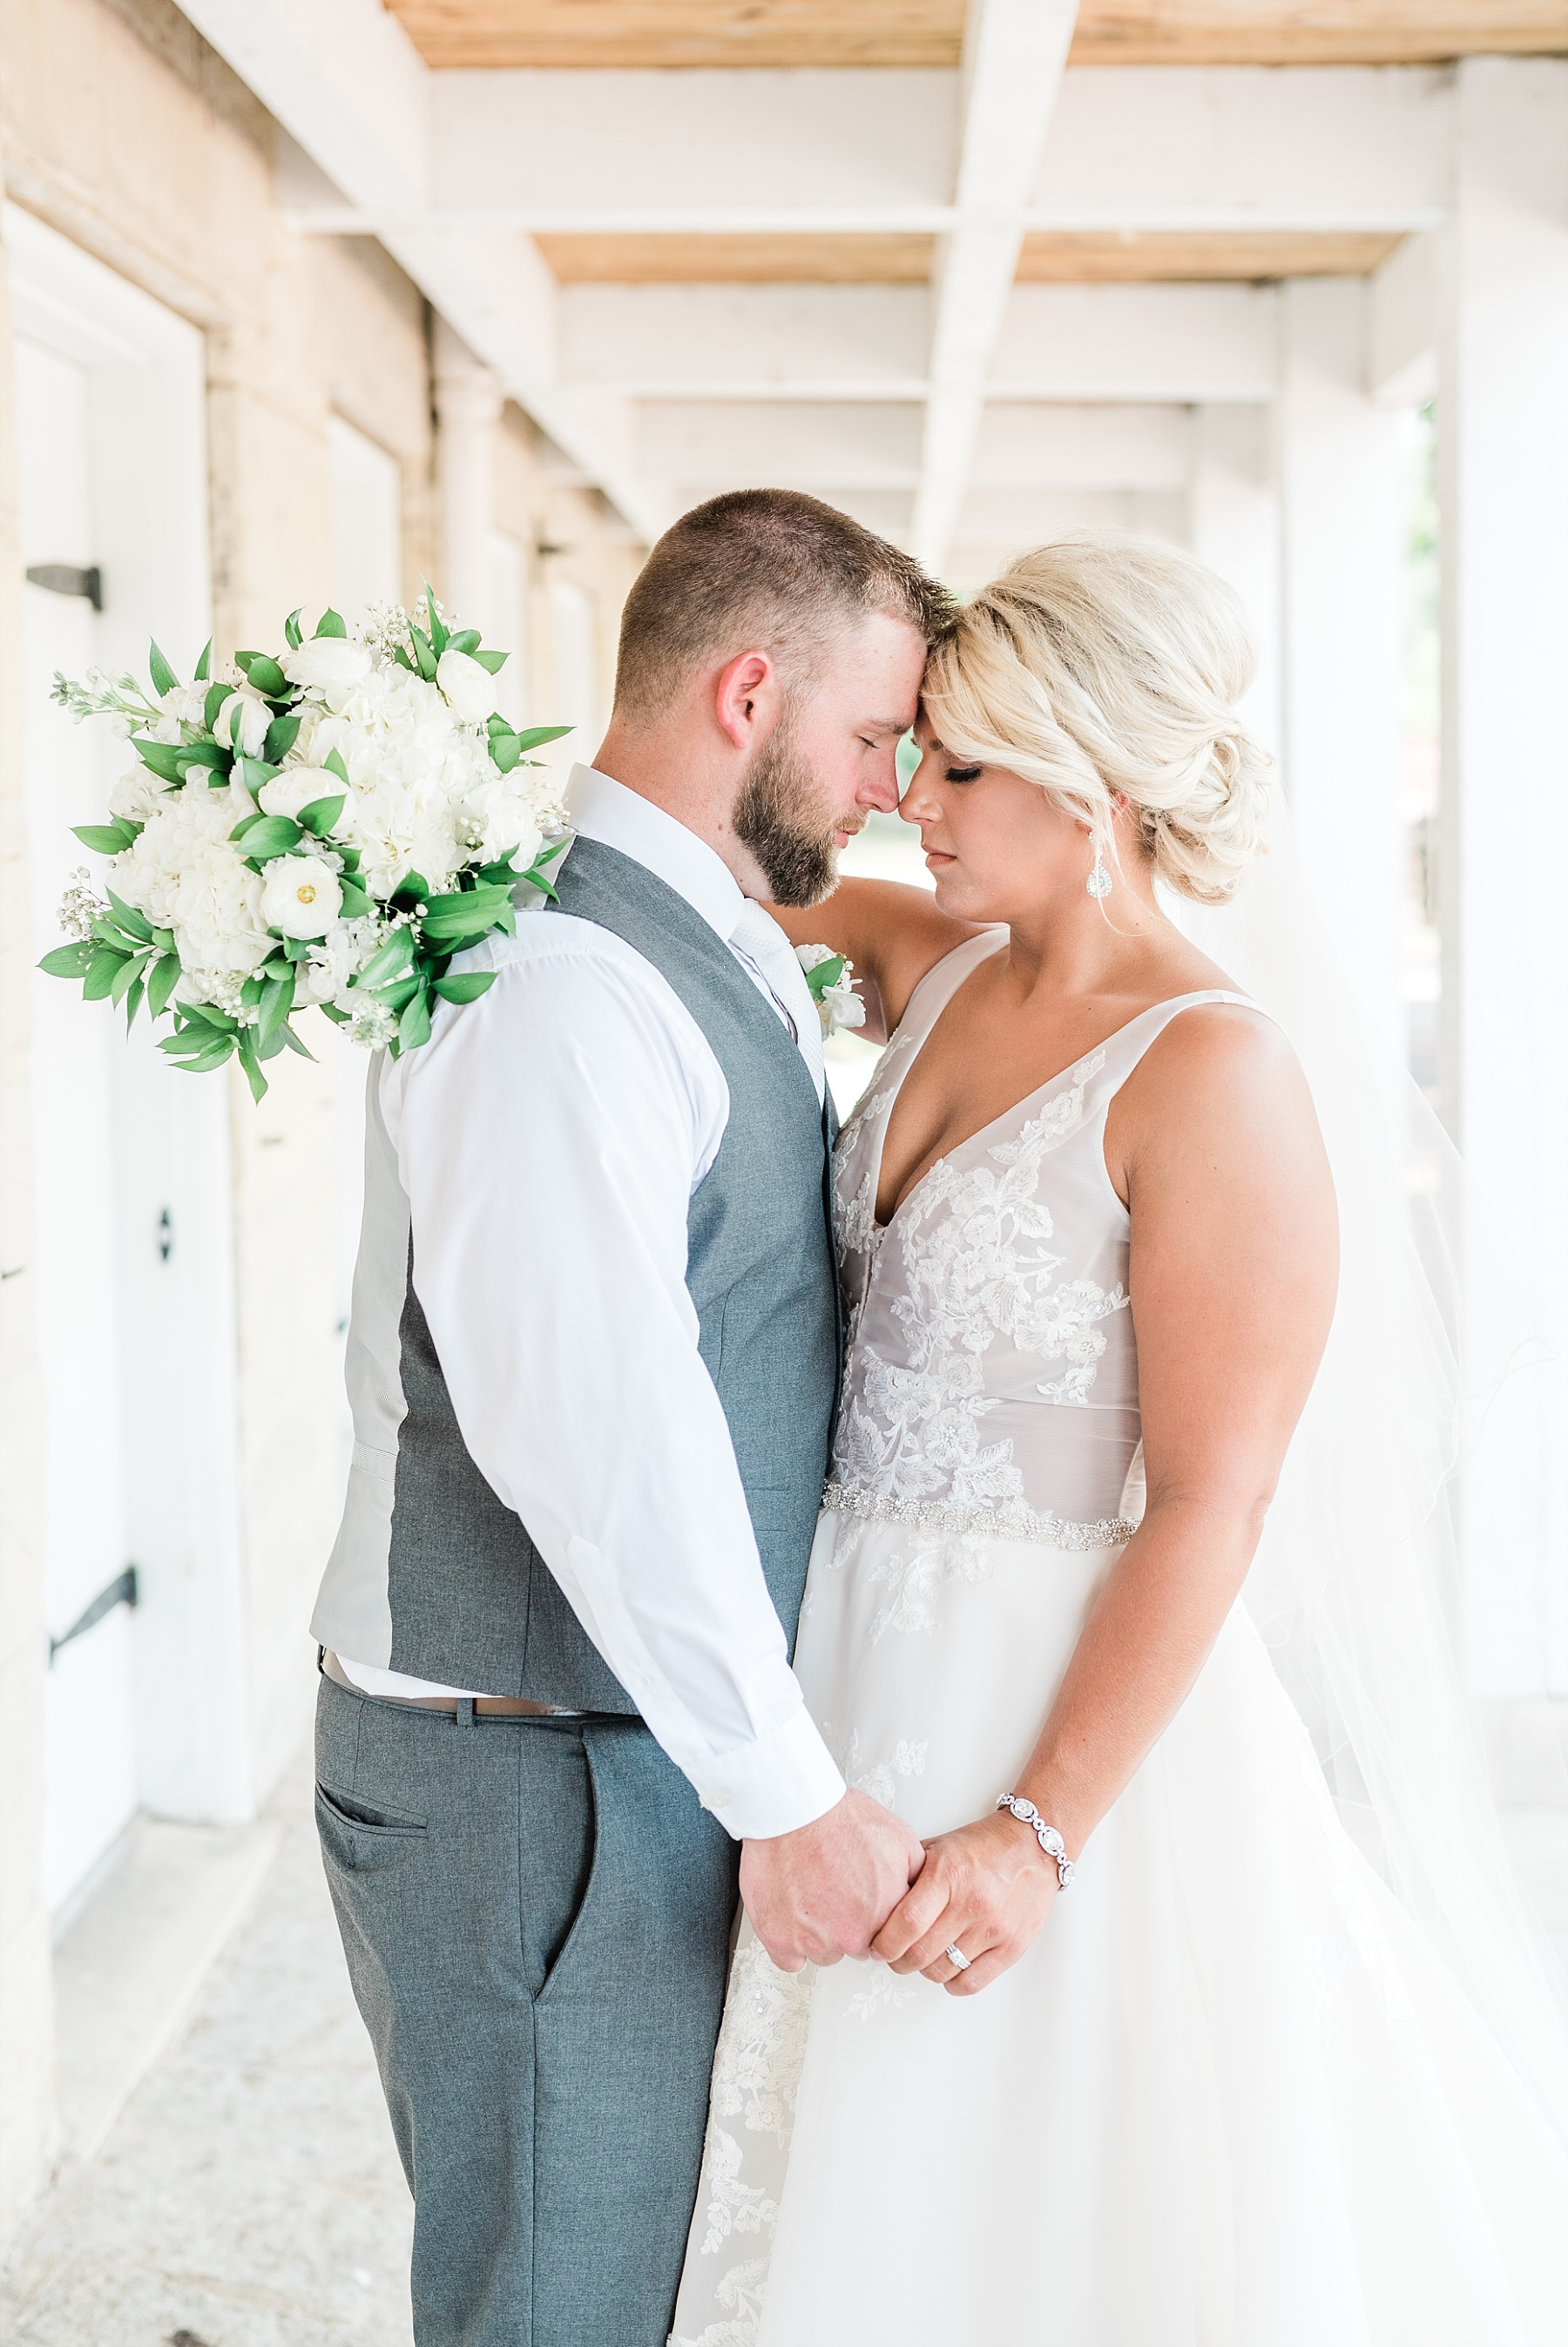 Rose Gold, White, and Greenery High Class Summer Wedding at The Millbottom in Downtown Jefferson City by Kelsi Kliethermes Photography_0028.jpg